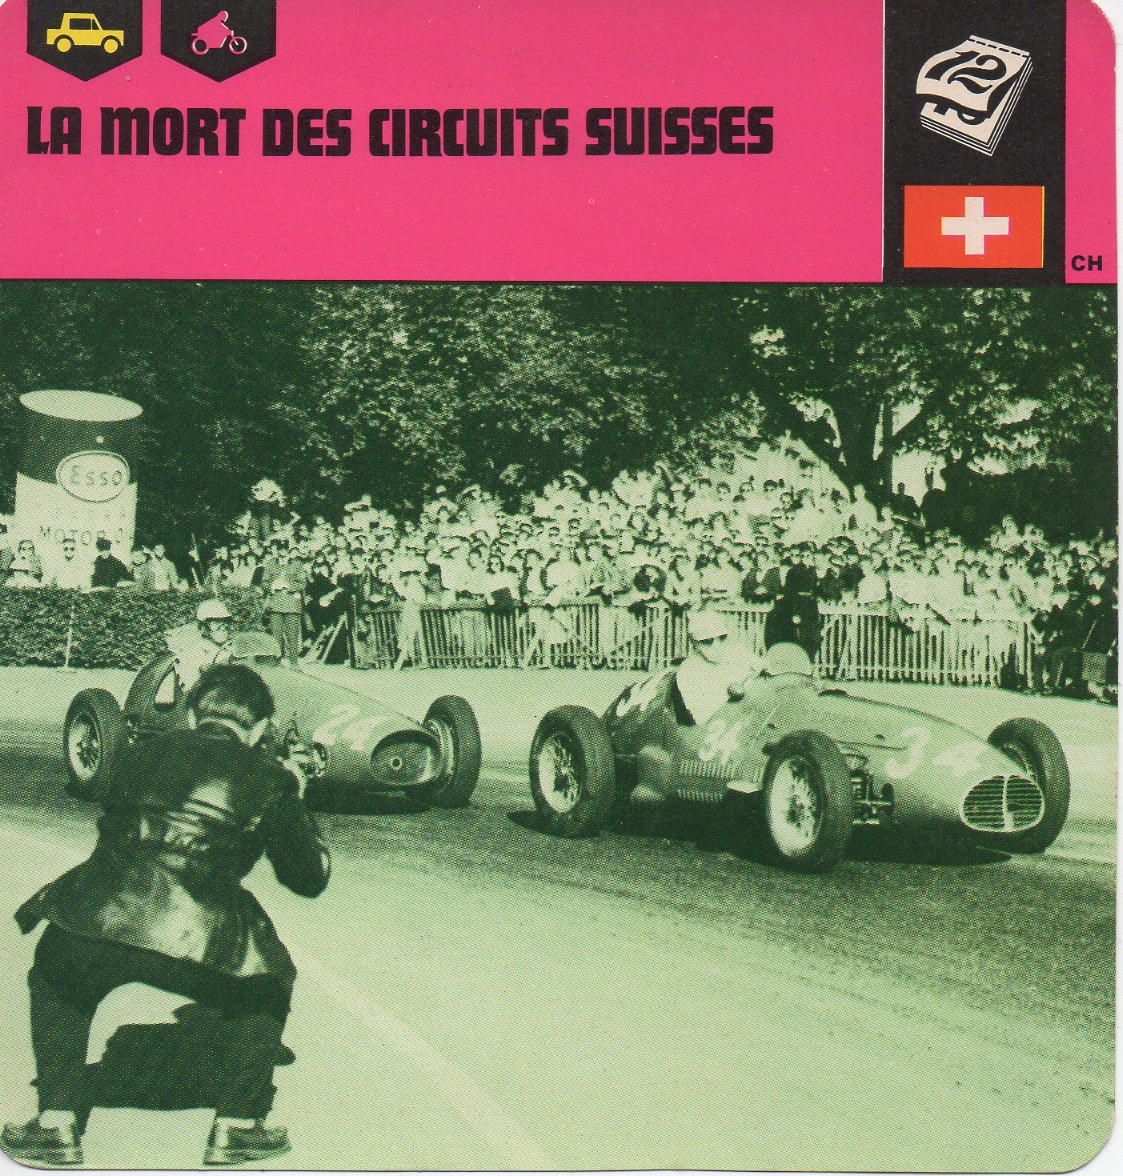 Circuits suisses